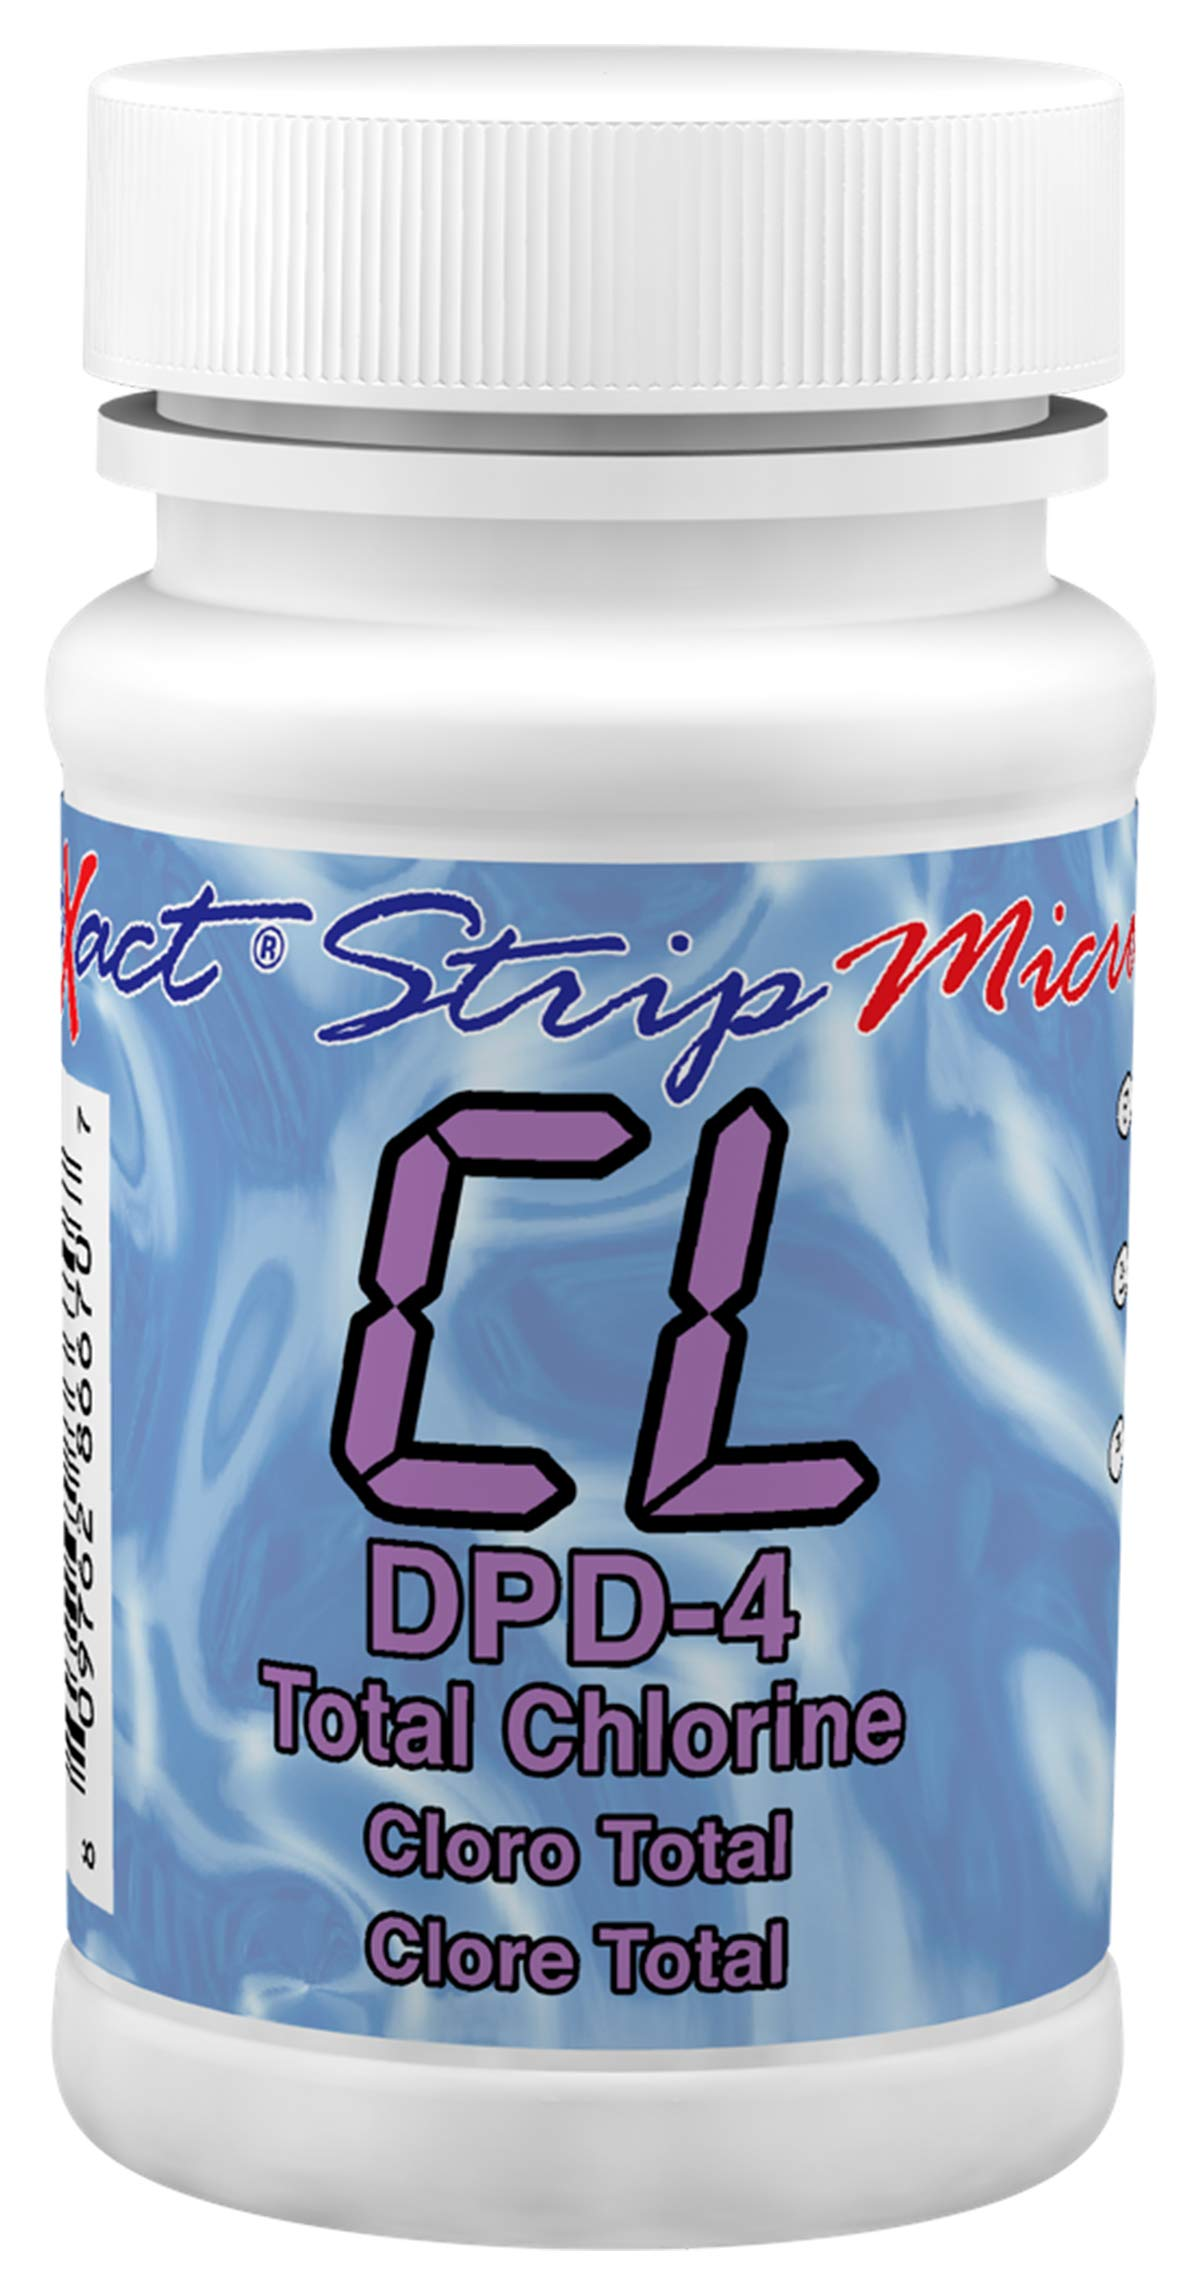 Industrial Test Systems eXact 486670 DPD-4 Micro Total Chlorine Strips, 0.01-11 ppm Detection Range (Bottle of 100) by Industrial Test Systems